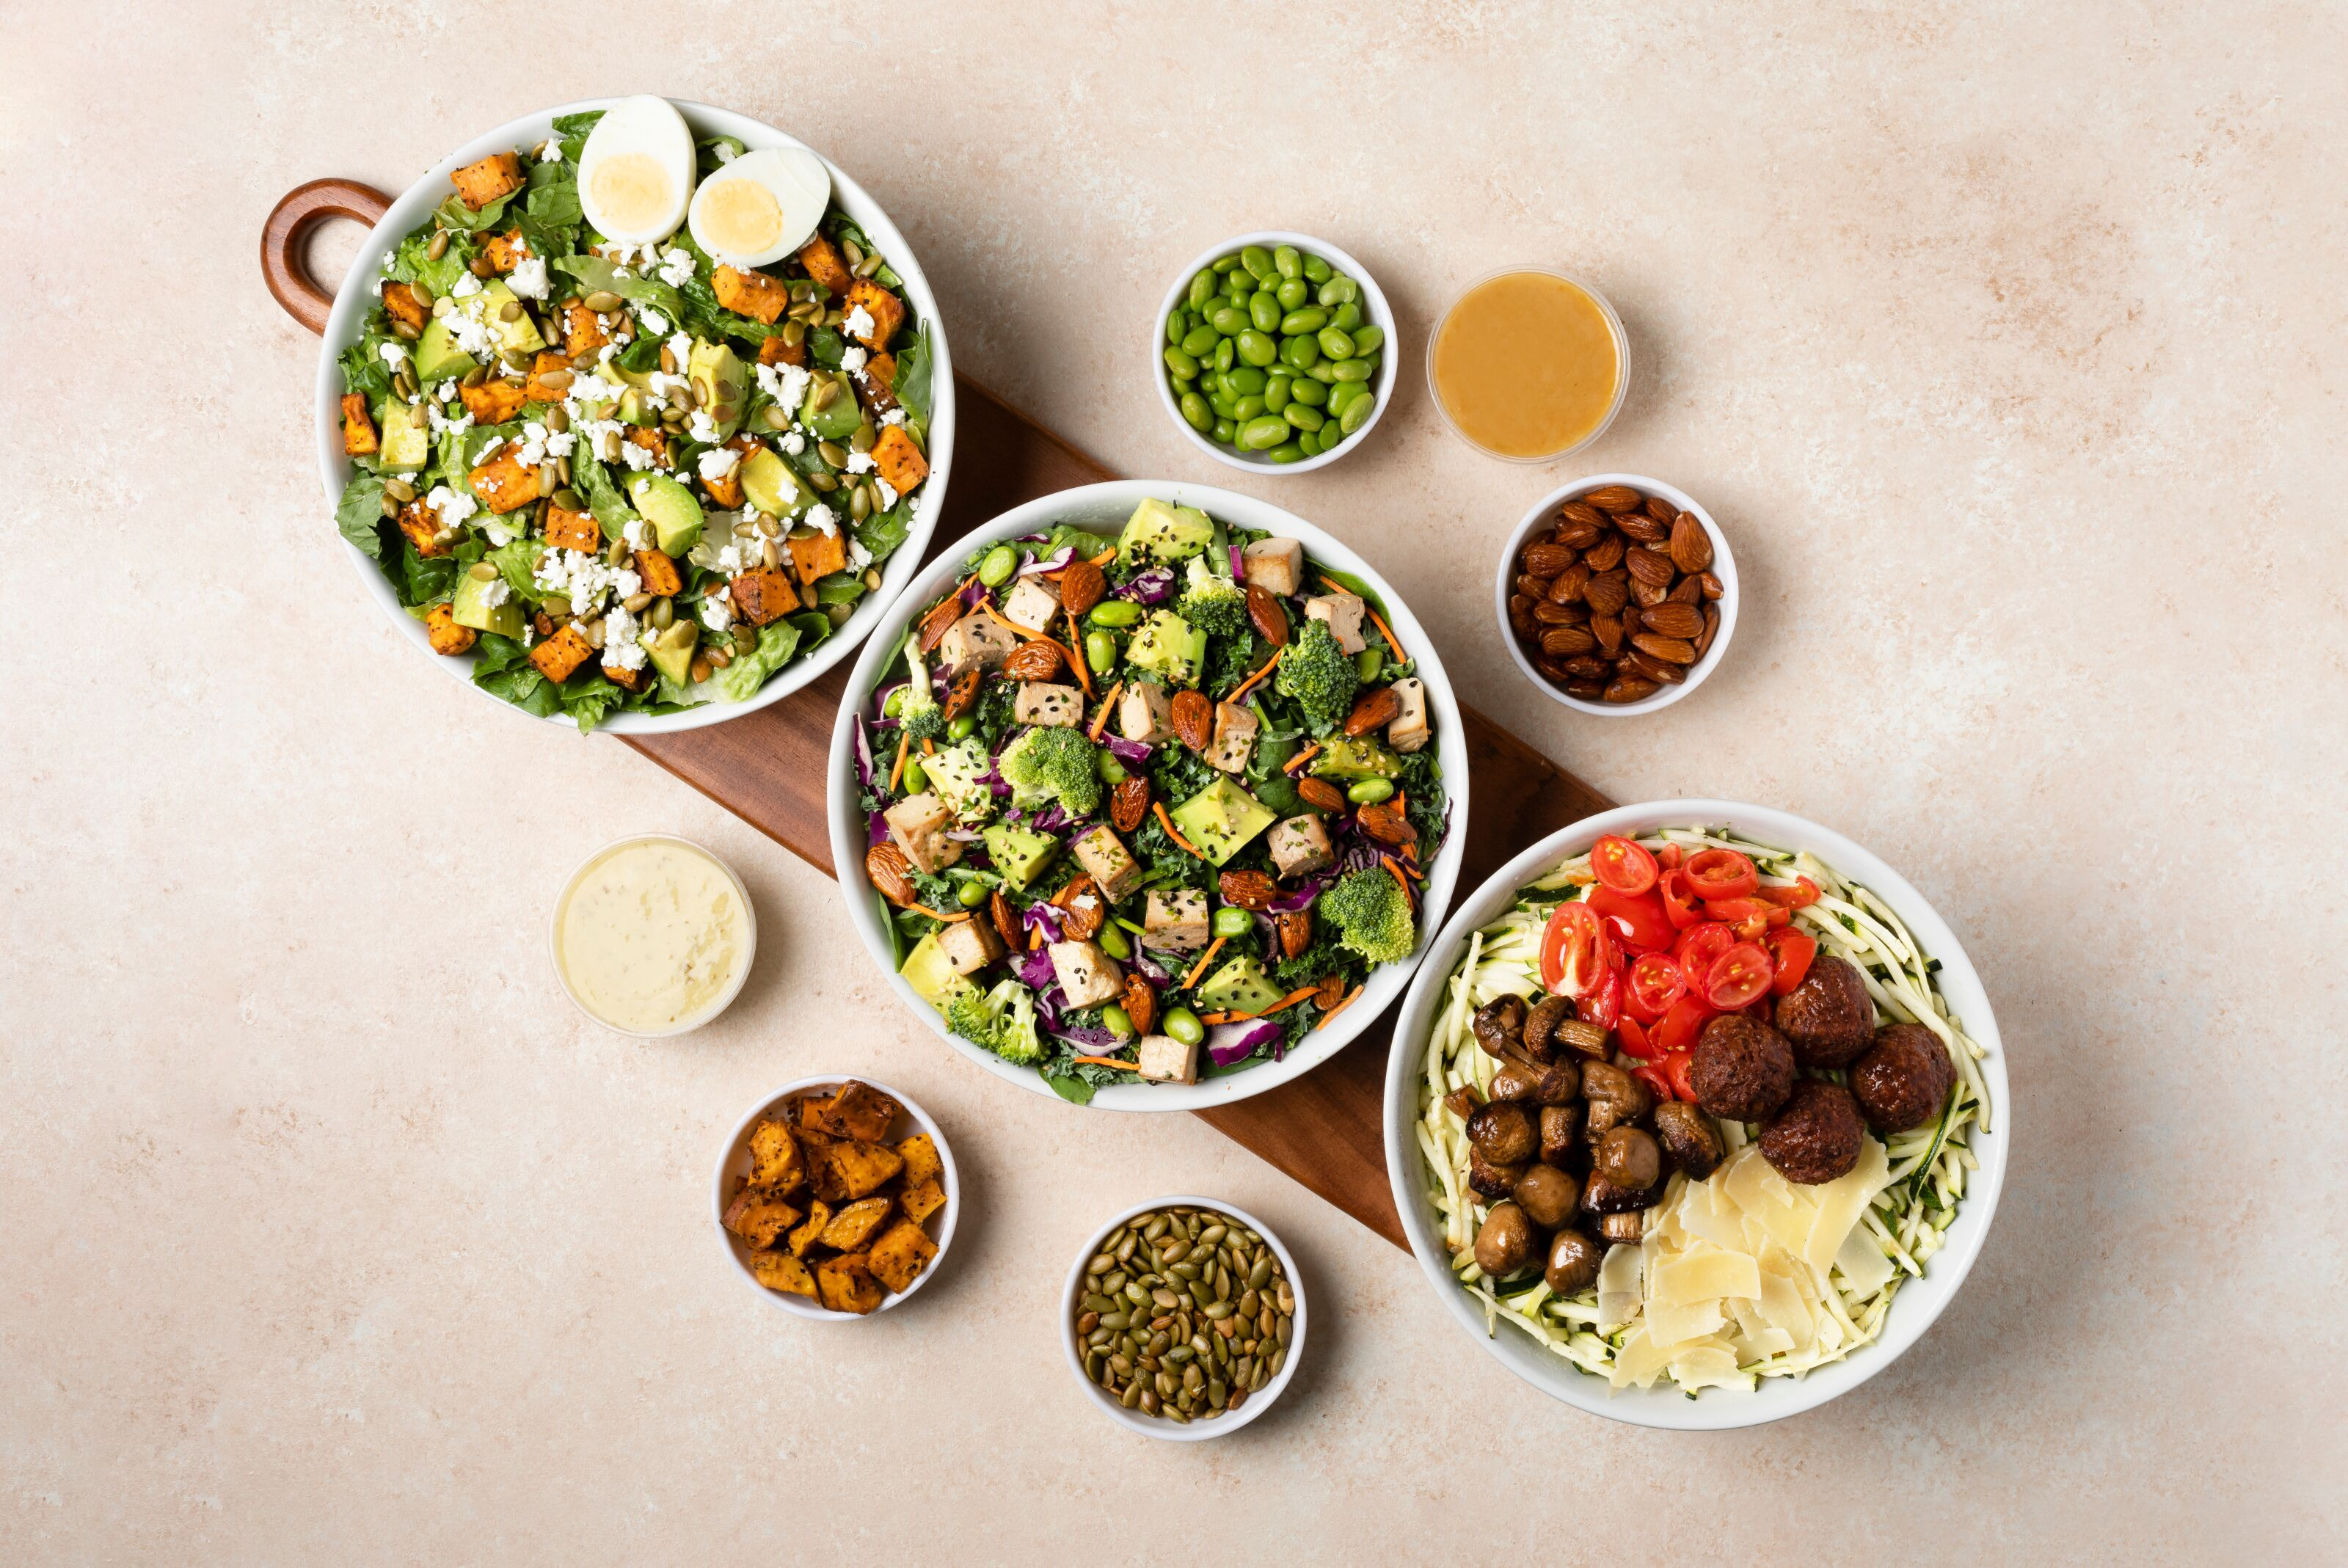 Just Salad and Grubhub let you order your way with Health Tribes